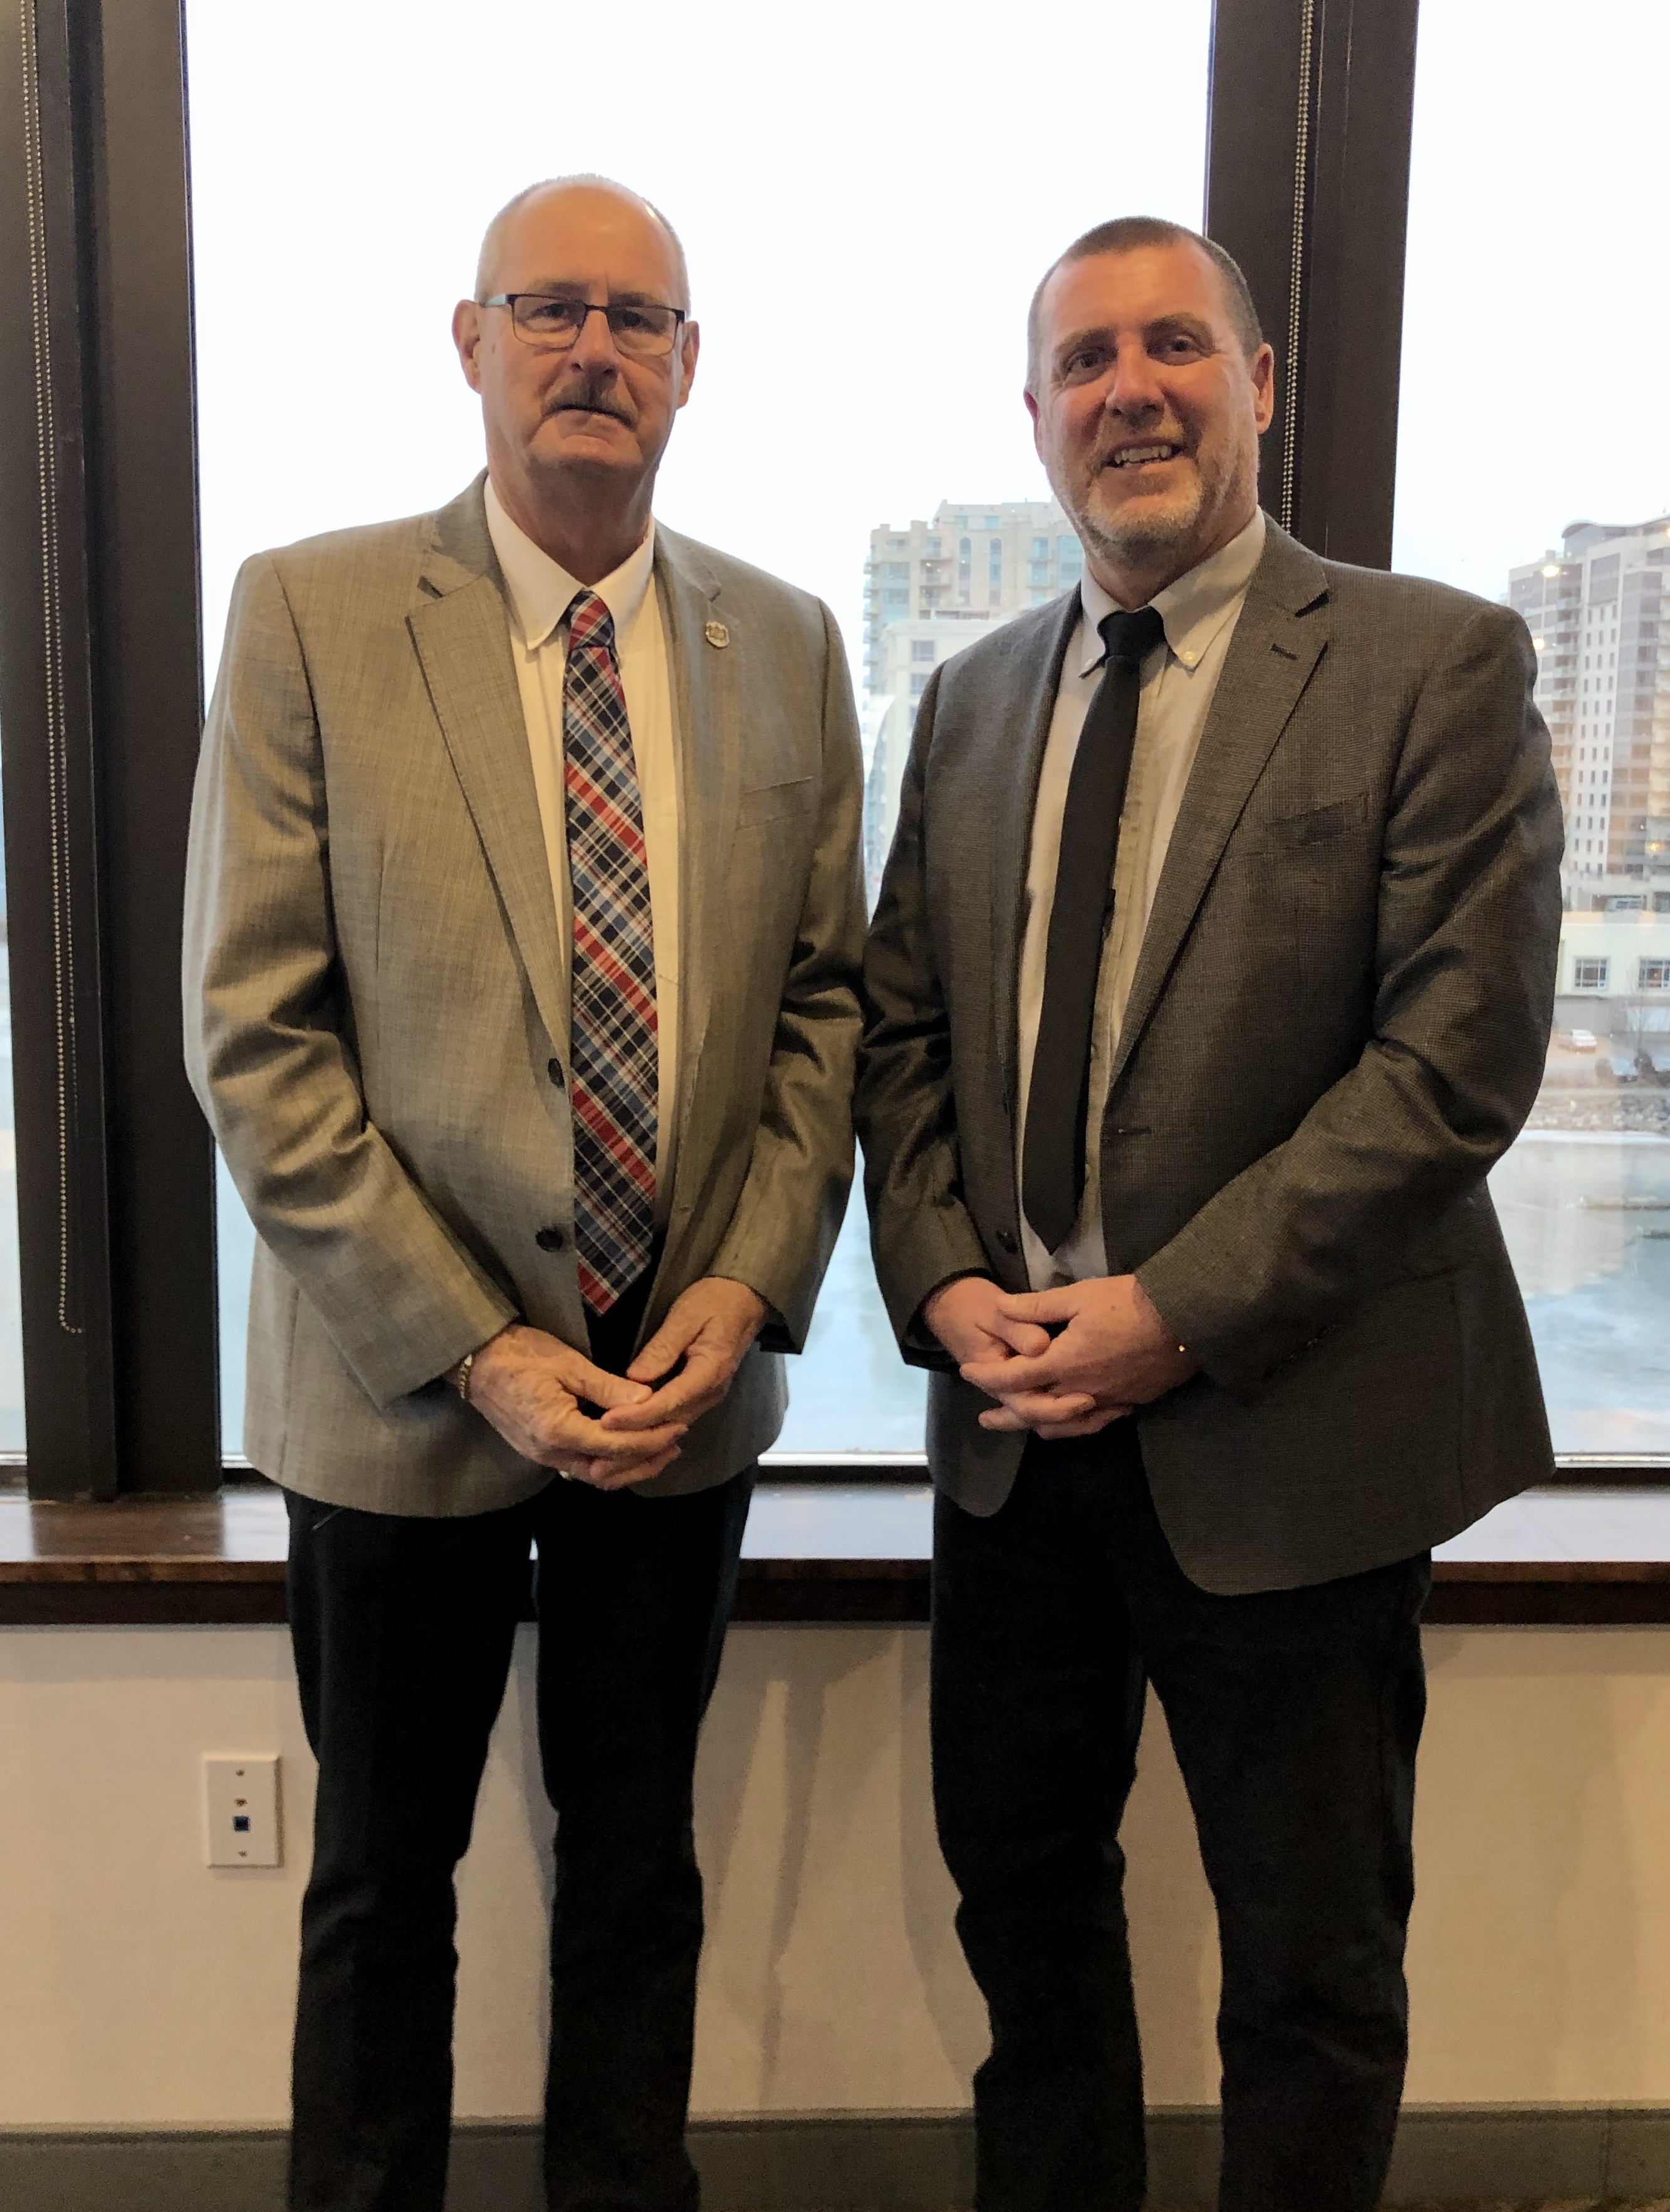 EOWC Chair and Vice-Chair 2020